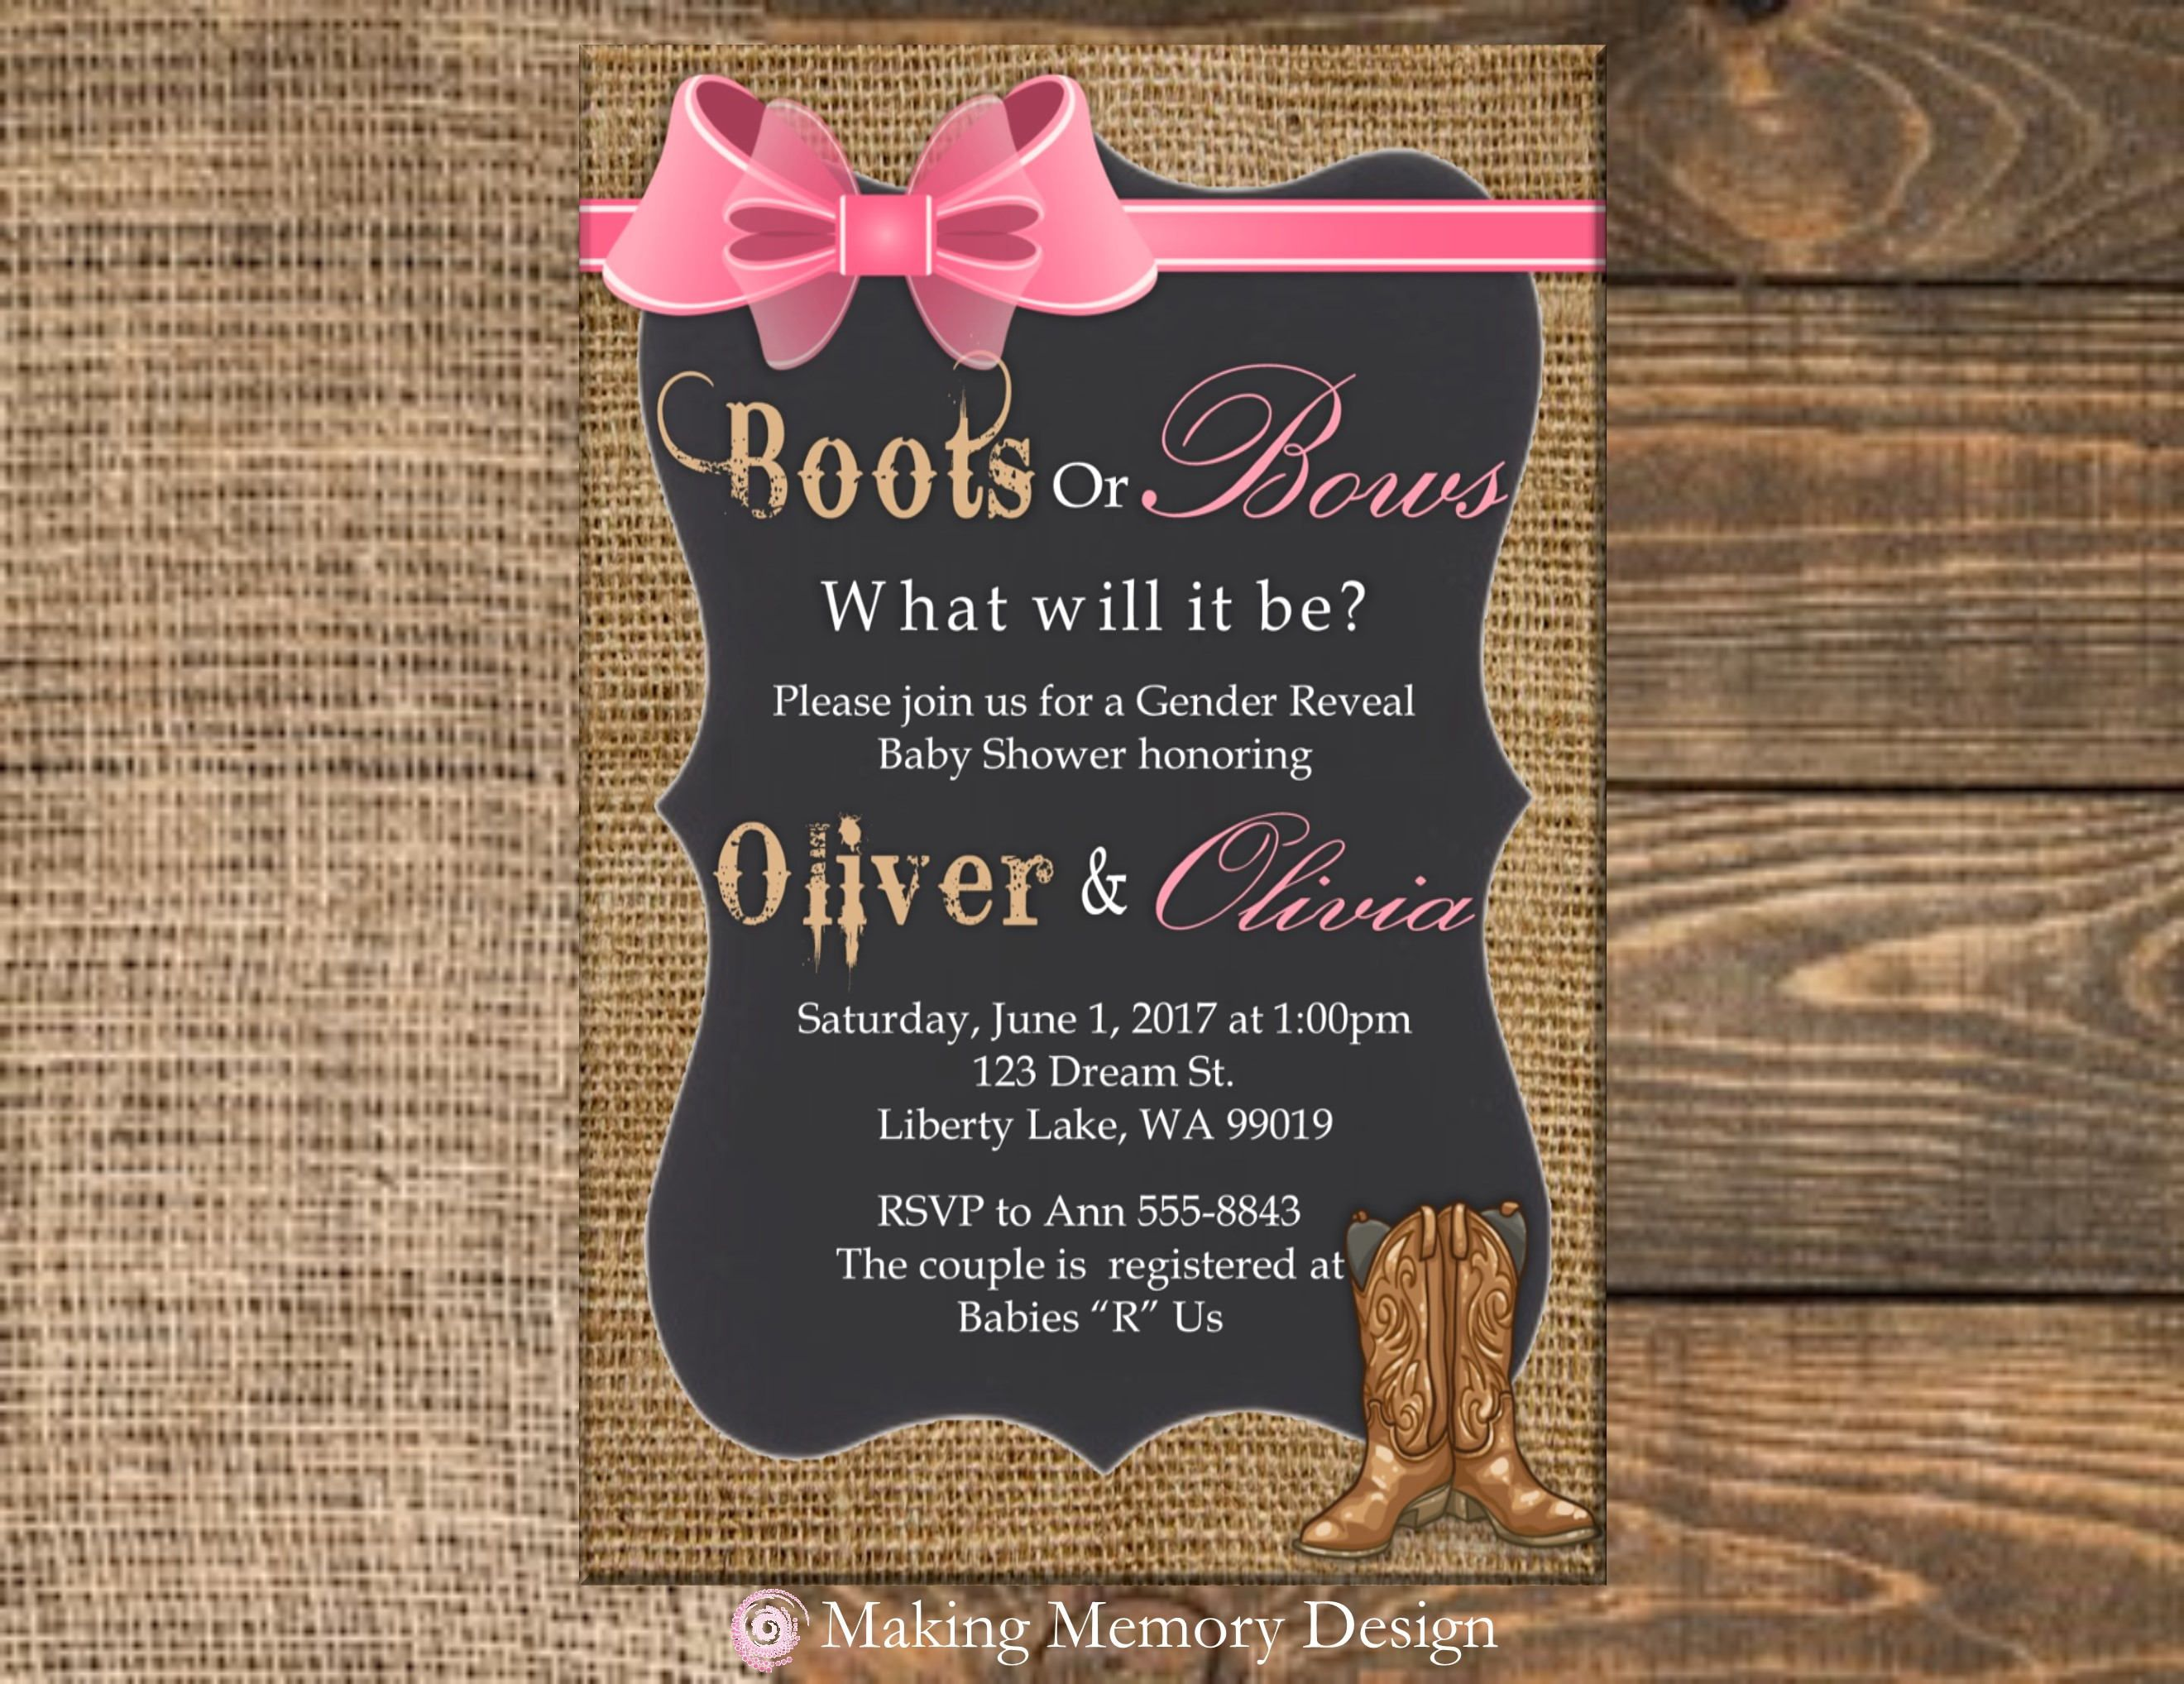 Boots or Bows Gender Reveal Baby Shower Invitation